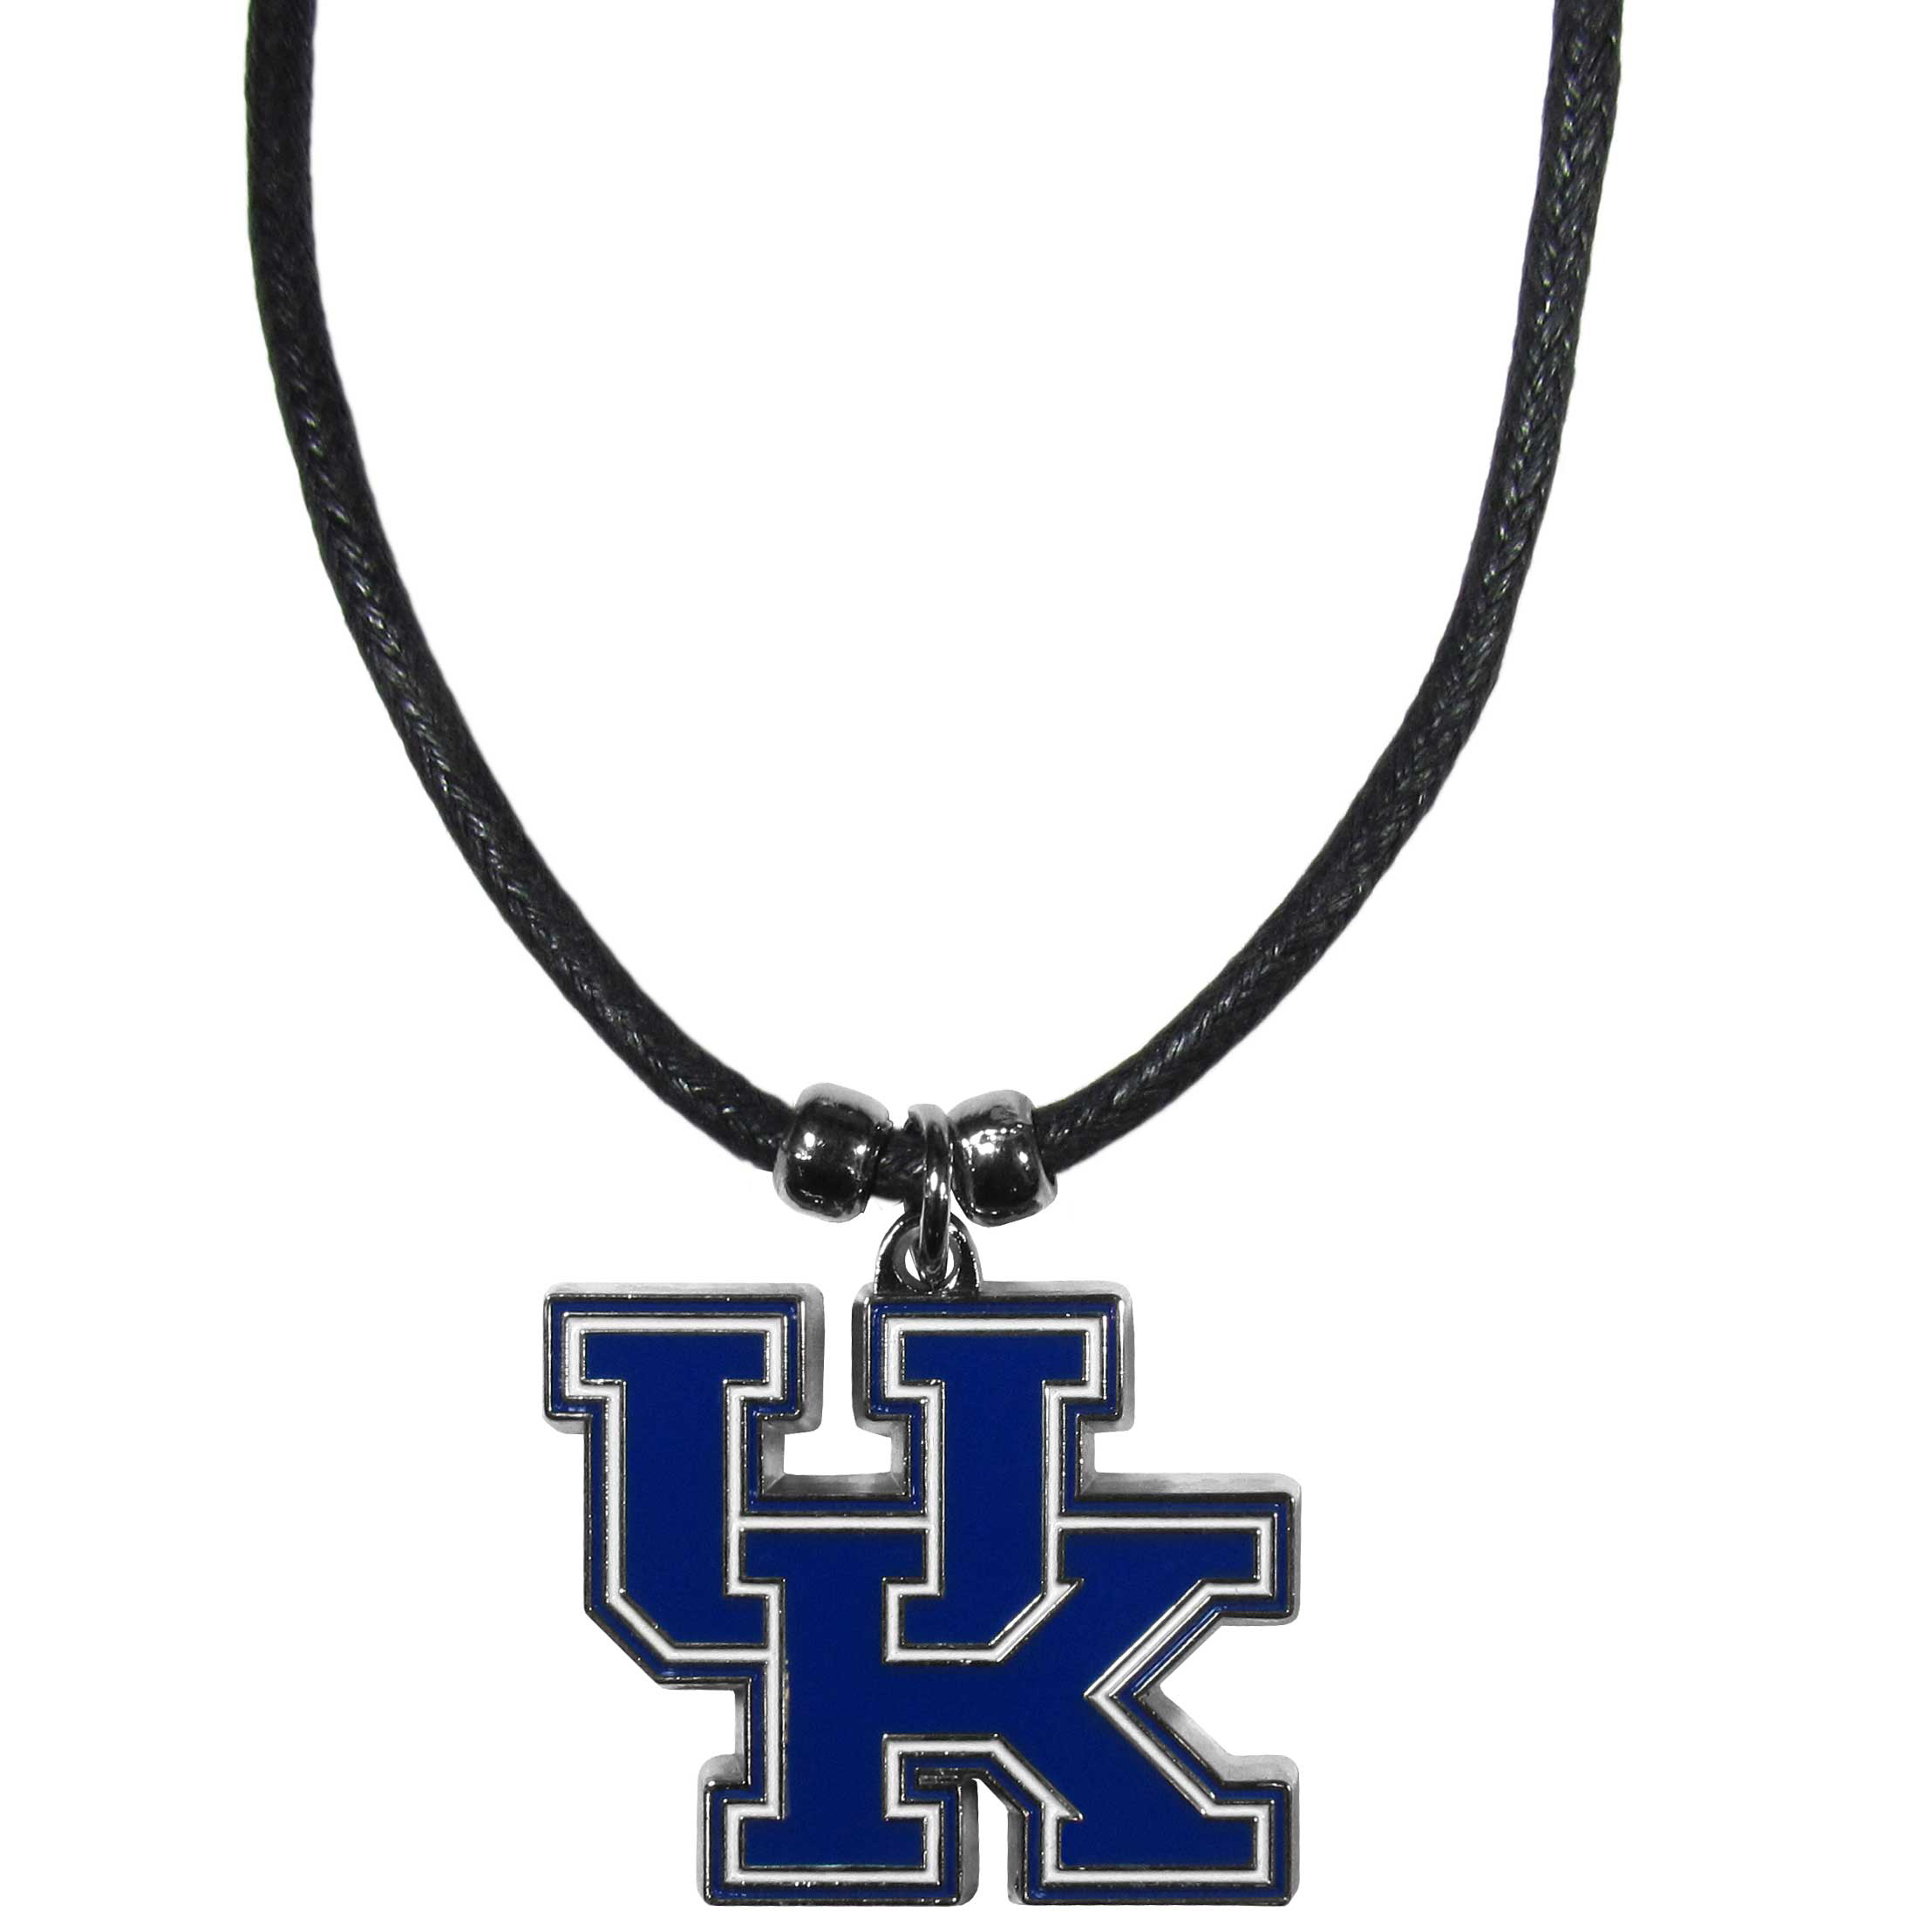 Kentucky Wildcats Cord Necklace - This classic style cotton cord necklace features an extra large Kentucky Wildcats pendant on a 21 inch cord.